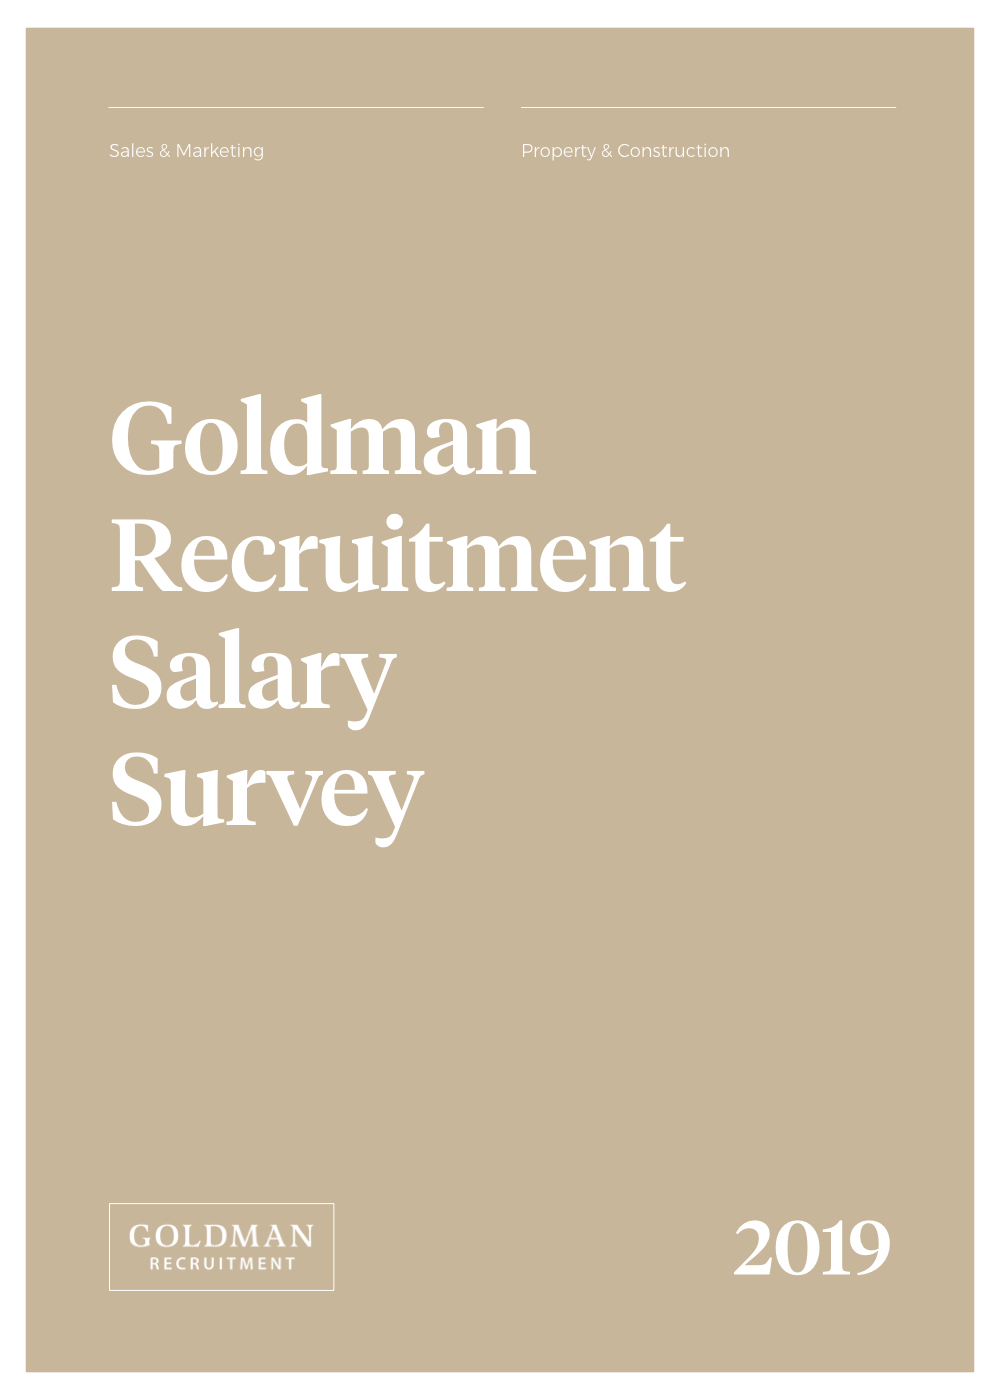 Sales & Marketing Salary Survey 2019